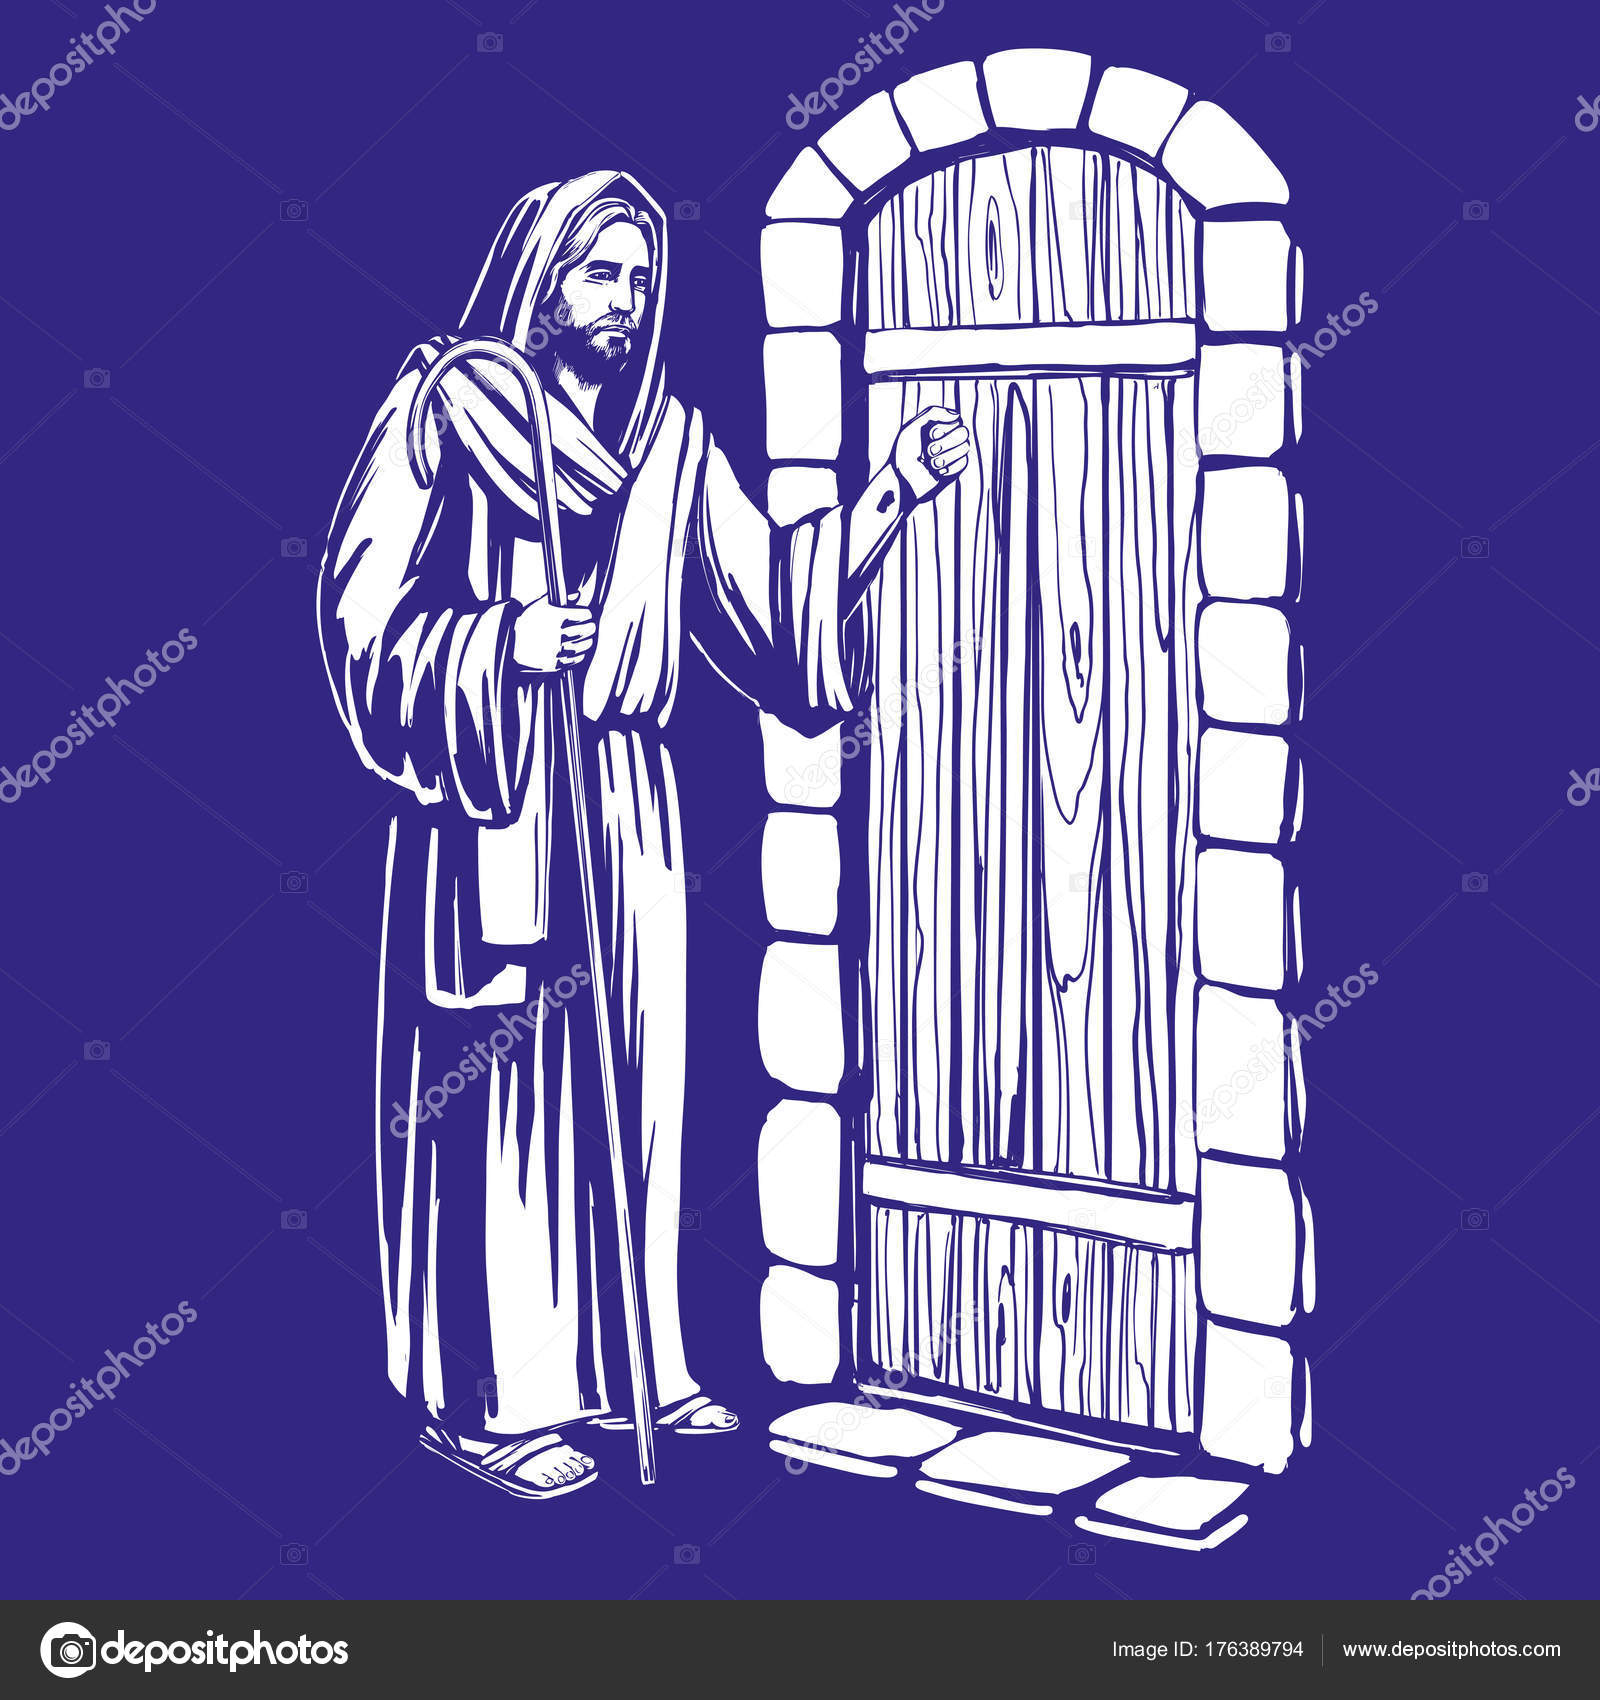 Jesus christ son of god knocking at the door symbol of jesus christ son of god knocking at the door symbol of christianity hand drawn altavistaventures